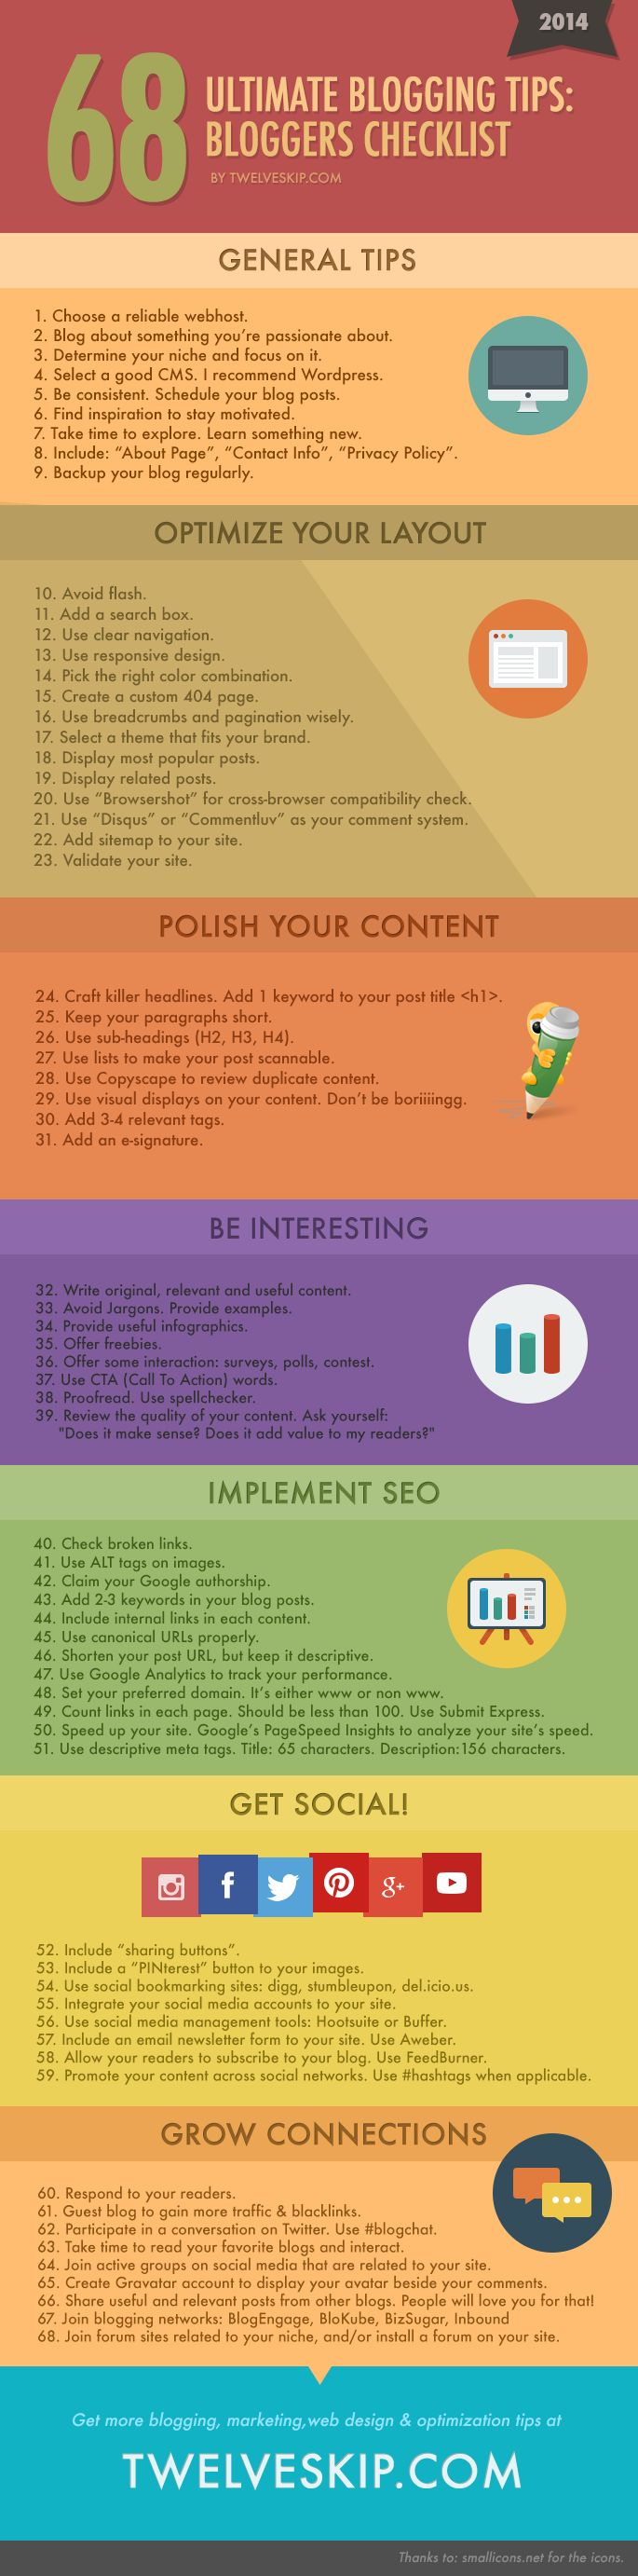 68 Ultimate Blogging Tips at: http://www.twelveskip.com/guide/blogging/1090/blogging-tips-ultimate-checklist